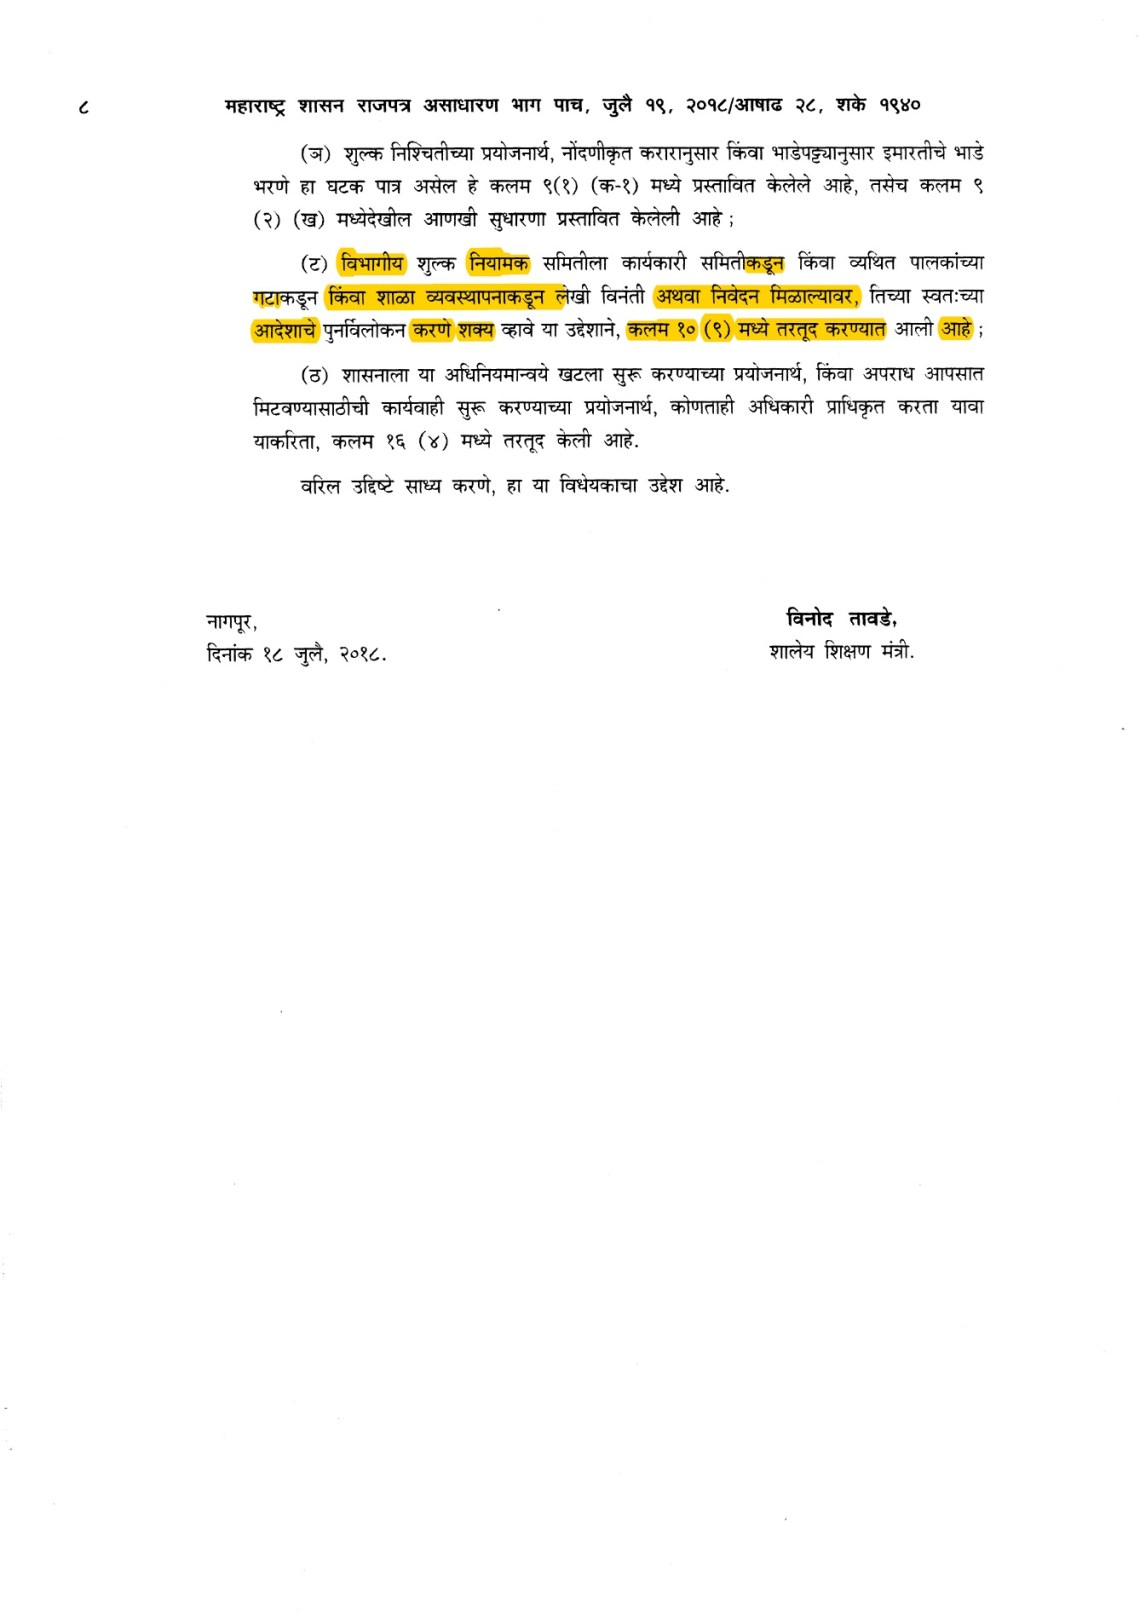 Maharashtra Educational Institutions Regulation of Fee Act 2011 Amendment Bill of 2018 Preamble Page 2